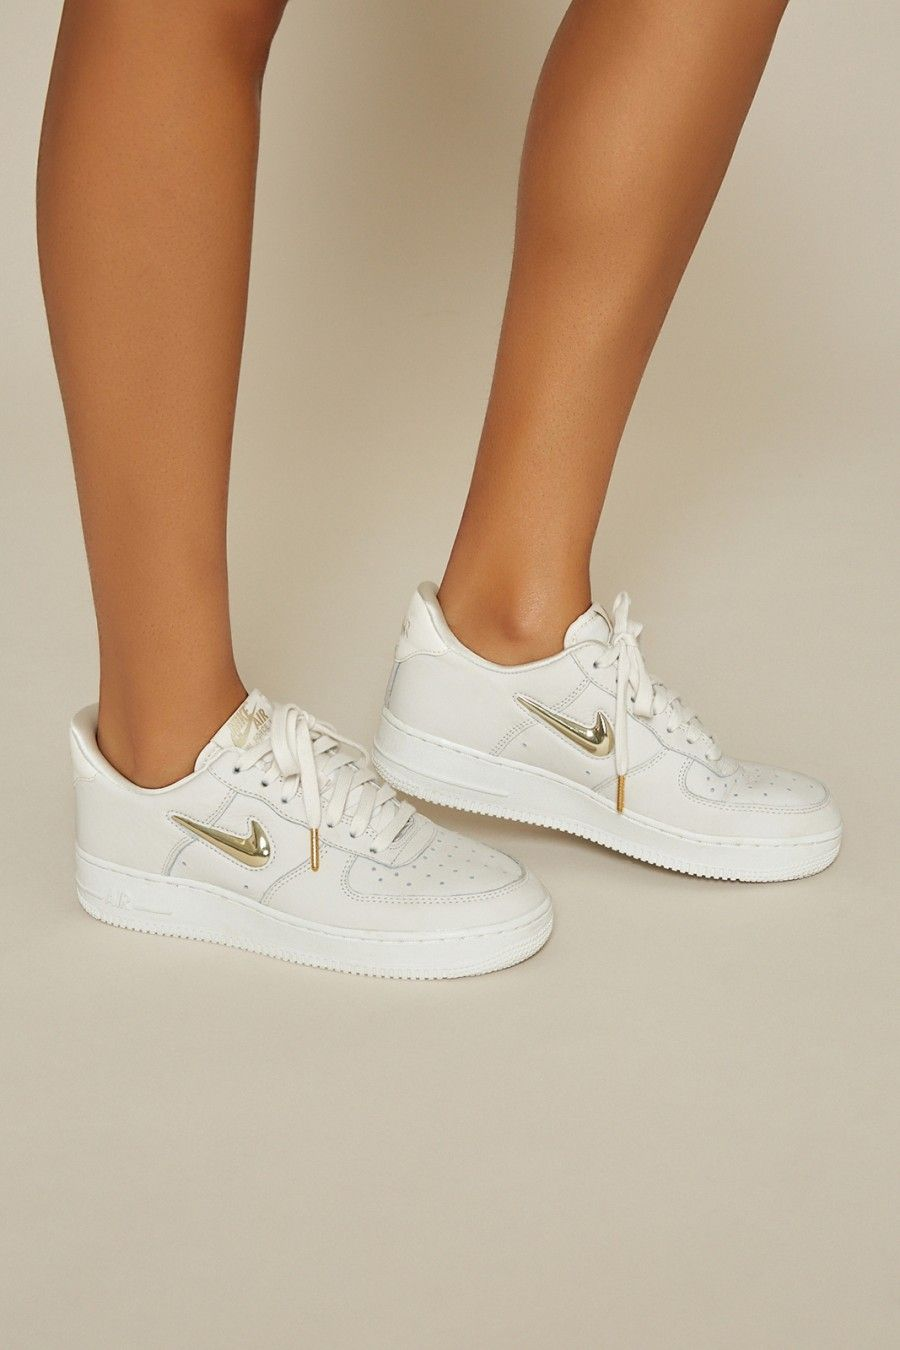 93bb8222c5 Nike in 2019 | shoes | Air force women, Shoes, Air force 1